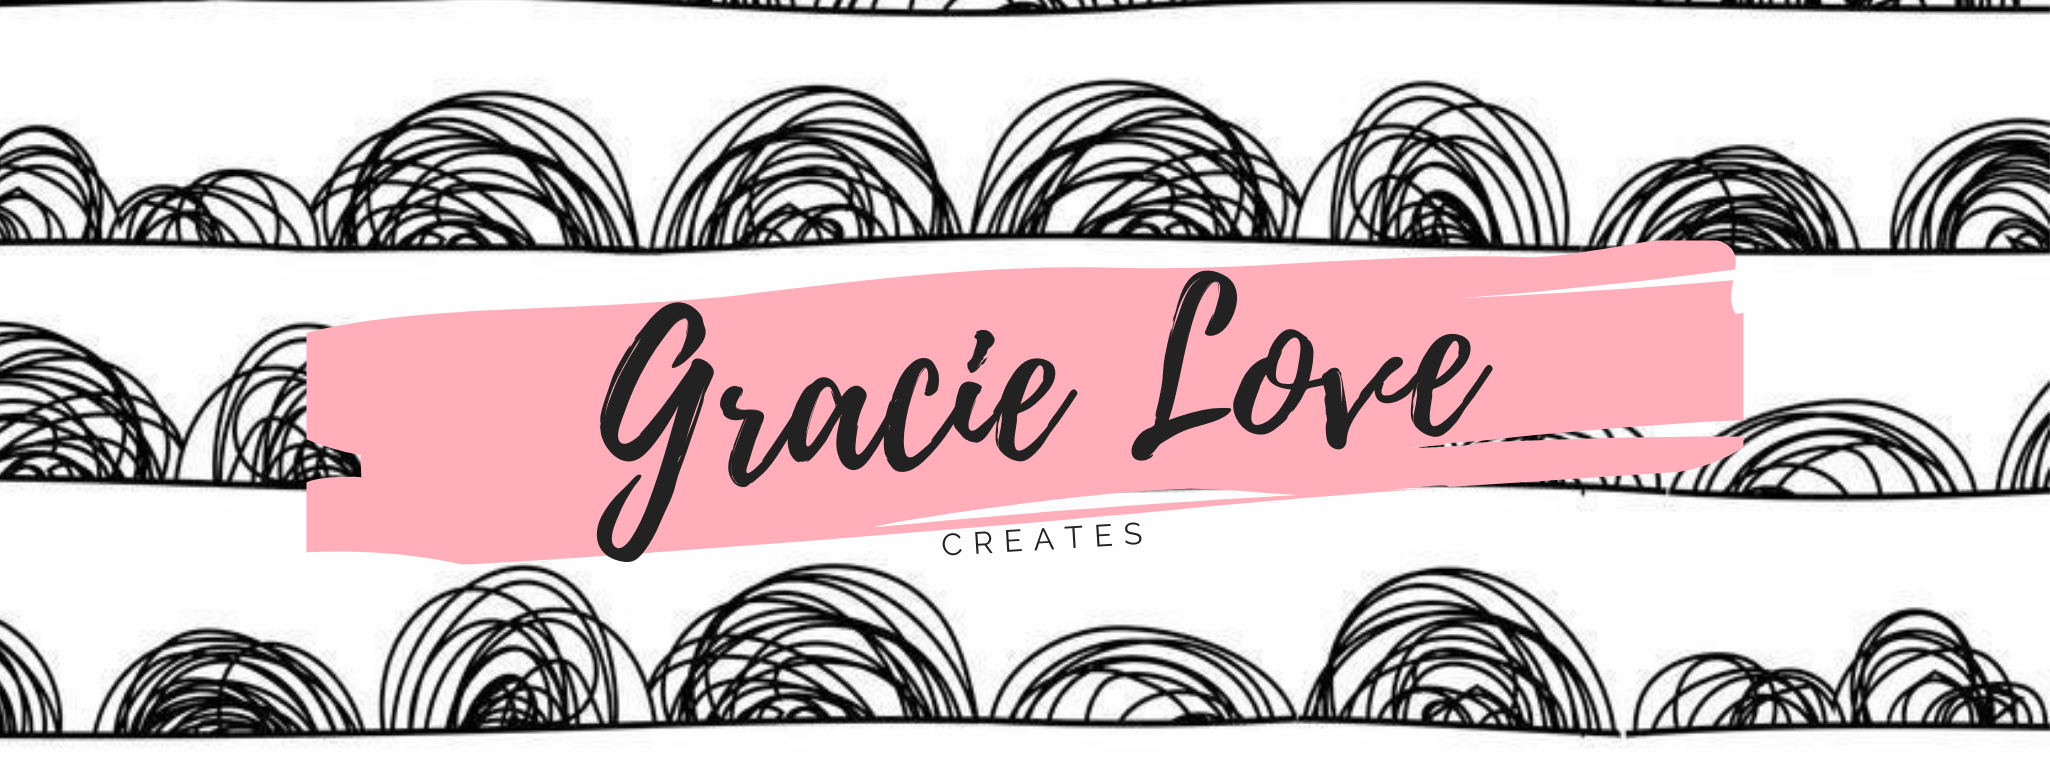 GRACIE LOVE CREATES